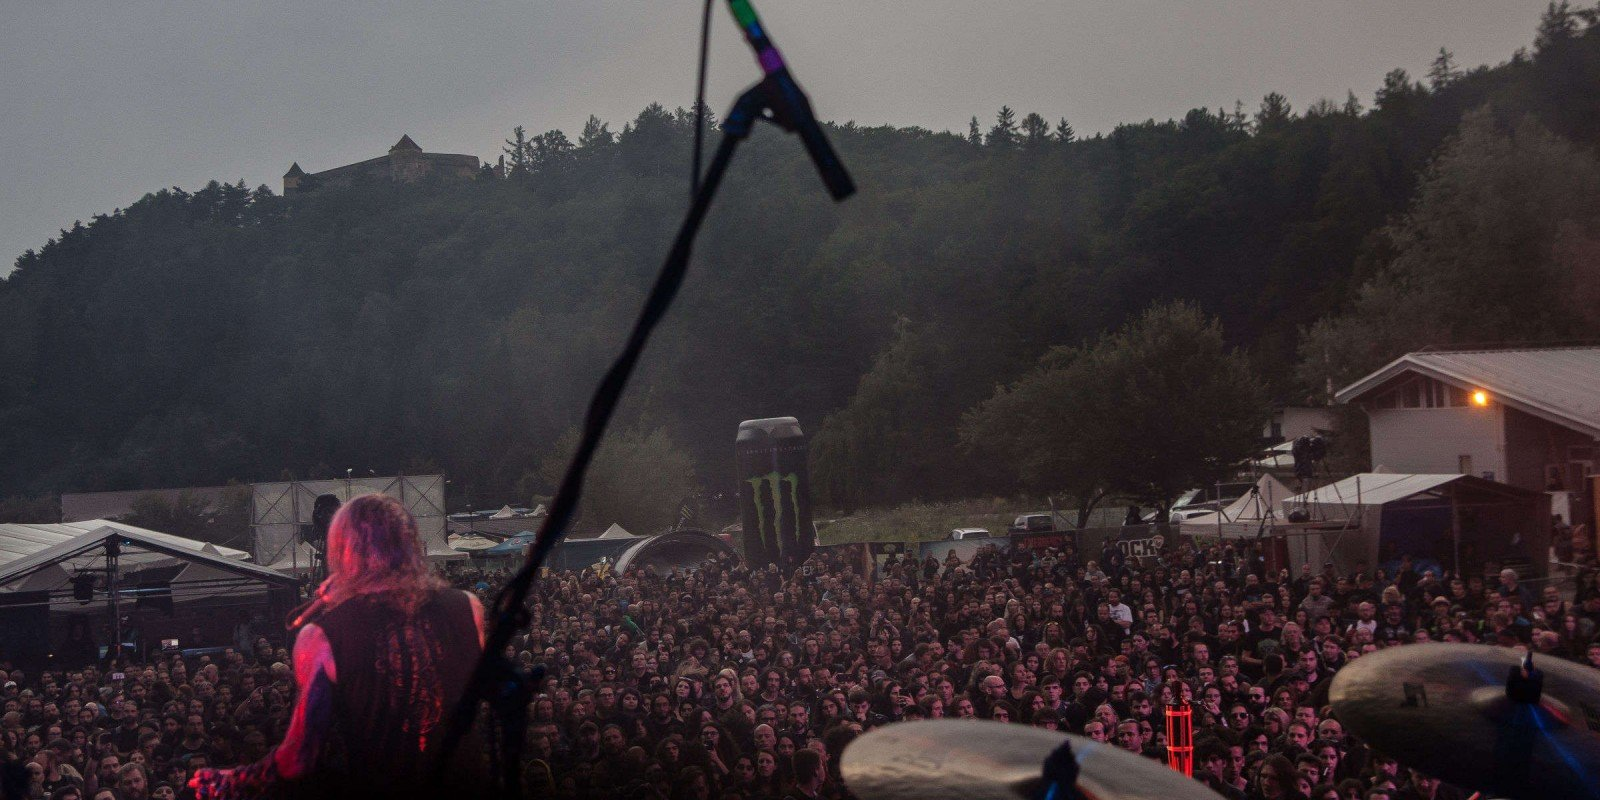 Imagery from contracted event Rockstadt Extreme Fest. NO me band in images.